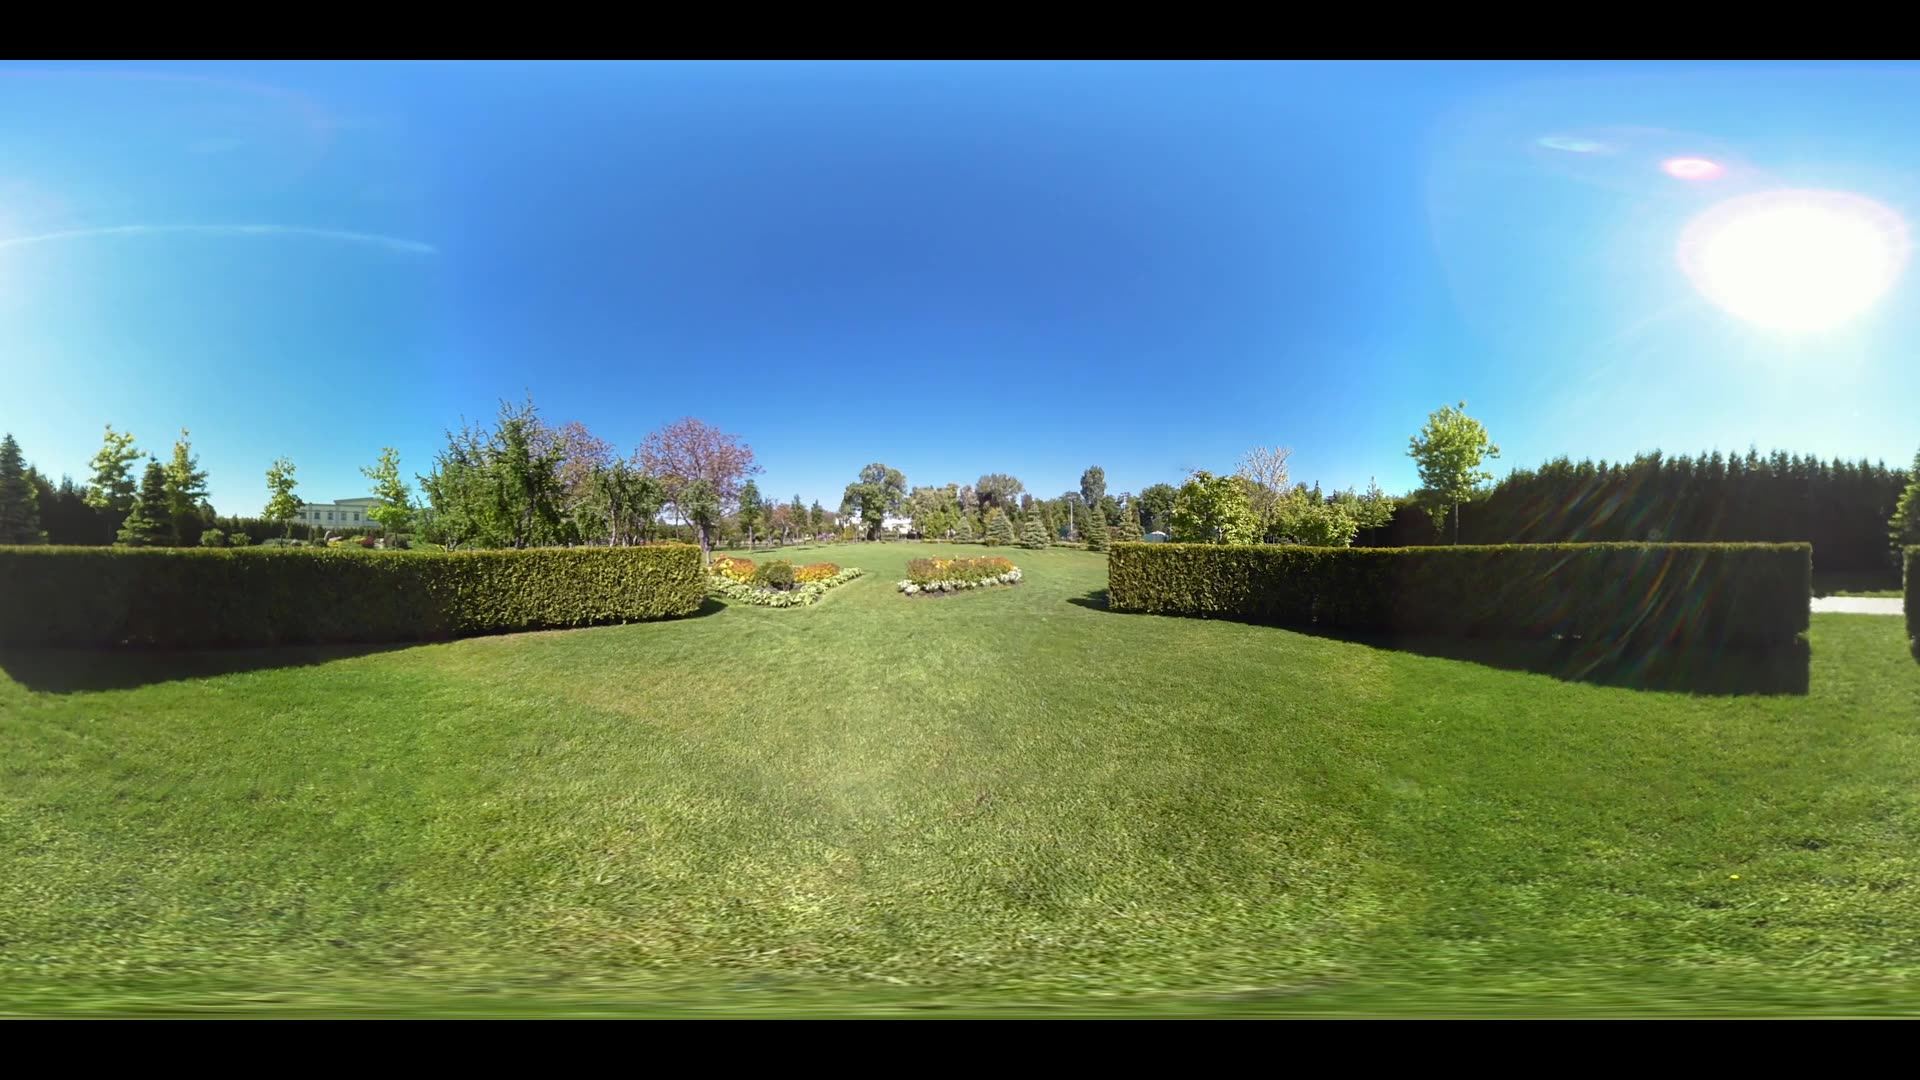 Green lawn in summer city park. Panoramic view green grass in summer park 360 degrees. Nature summer park day. Landscape city park 360 degrees panorama